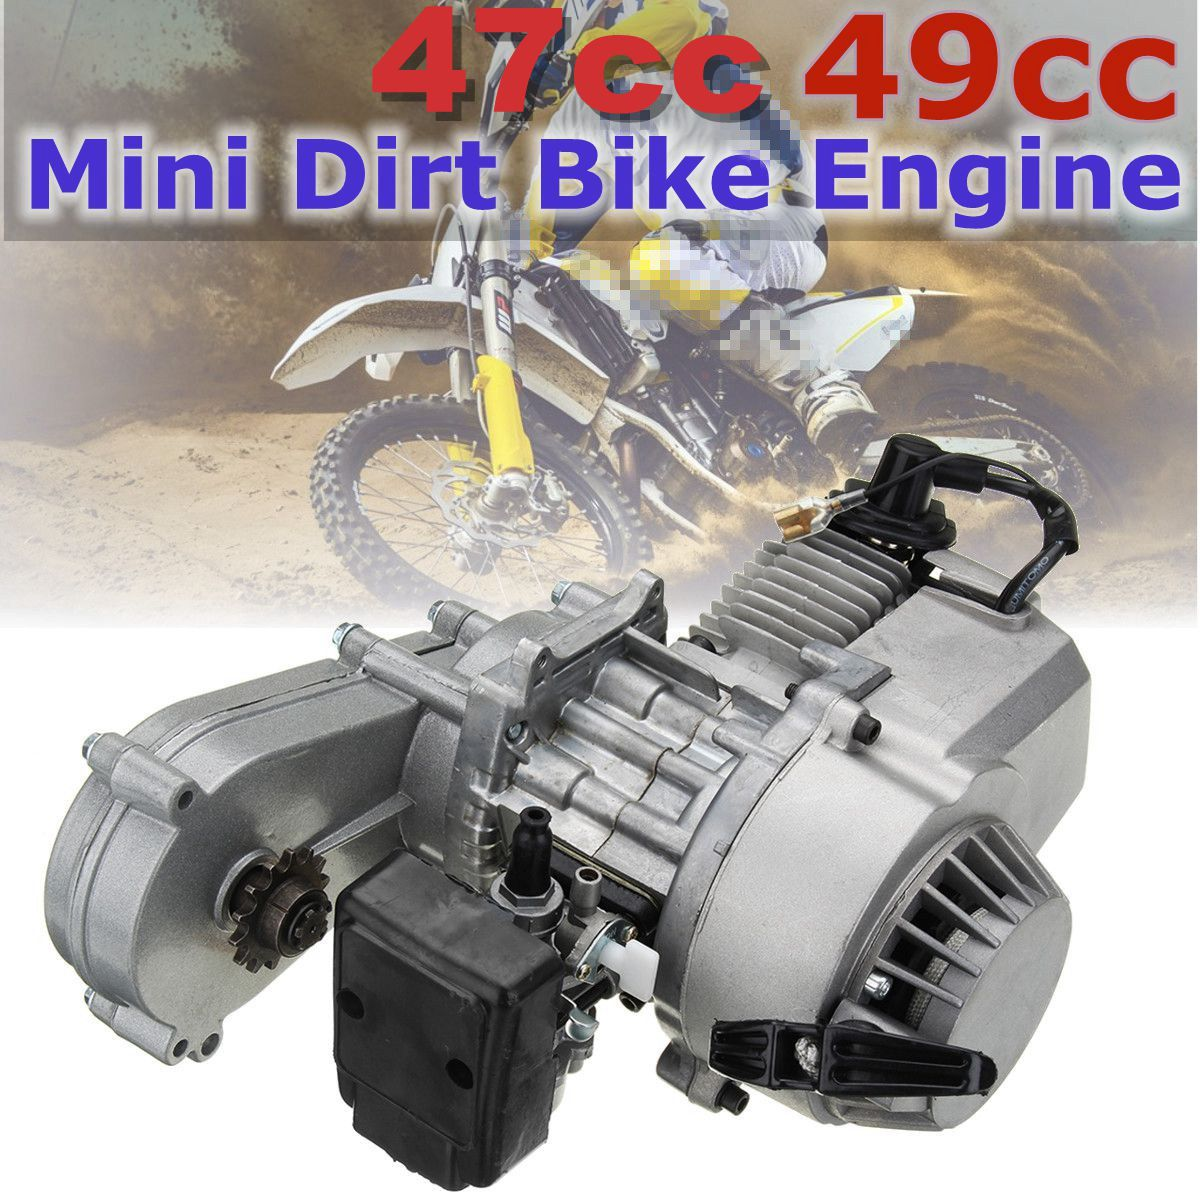 49cc 47cc Motorcycle Complete Engine 2-Stroke Pull Start W/Transmission Silver For Mini Dirt Bike image